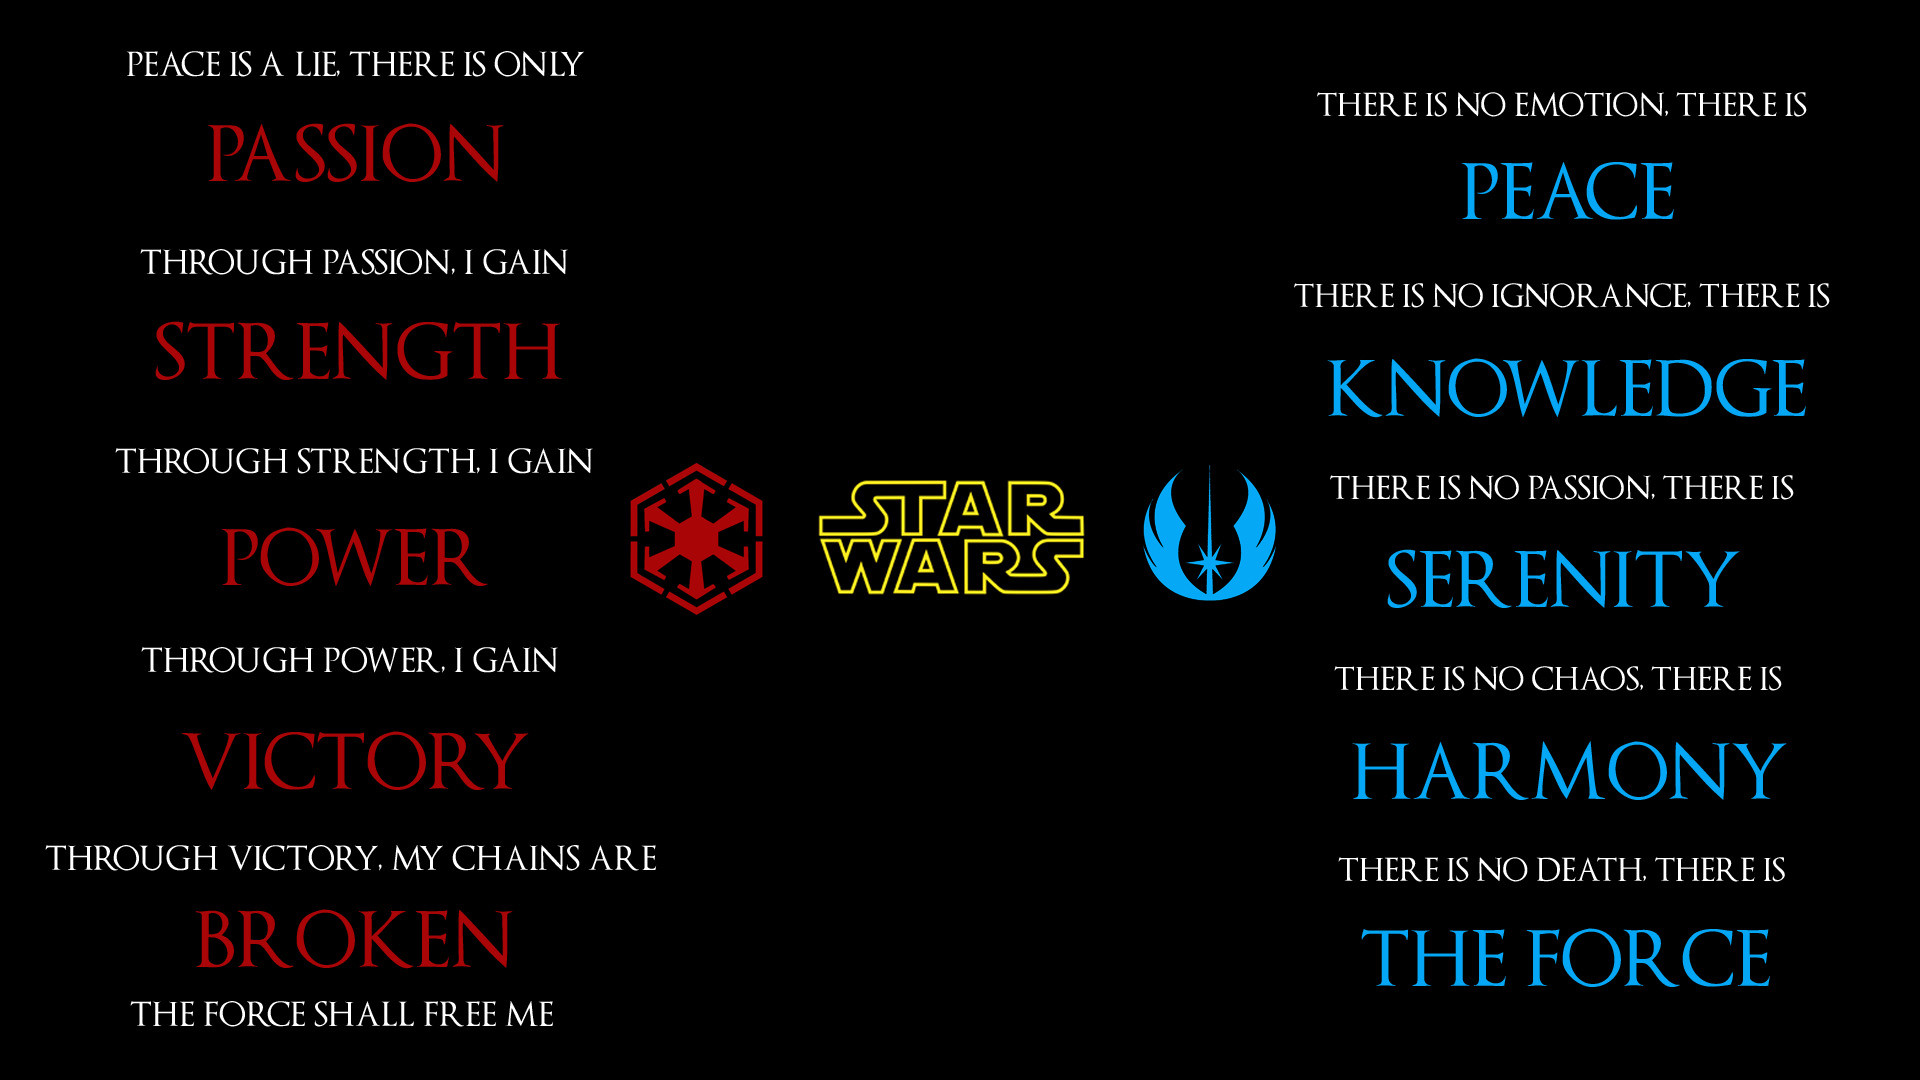 """Variants for only Sith, or only Jedi: https://imgur.com/a/qBQGH Edited so  that """"The Force"""" is highlighted in the Sith Code, Rather than """"Broken"""" …"""